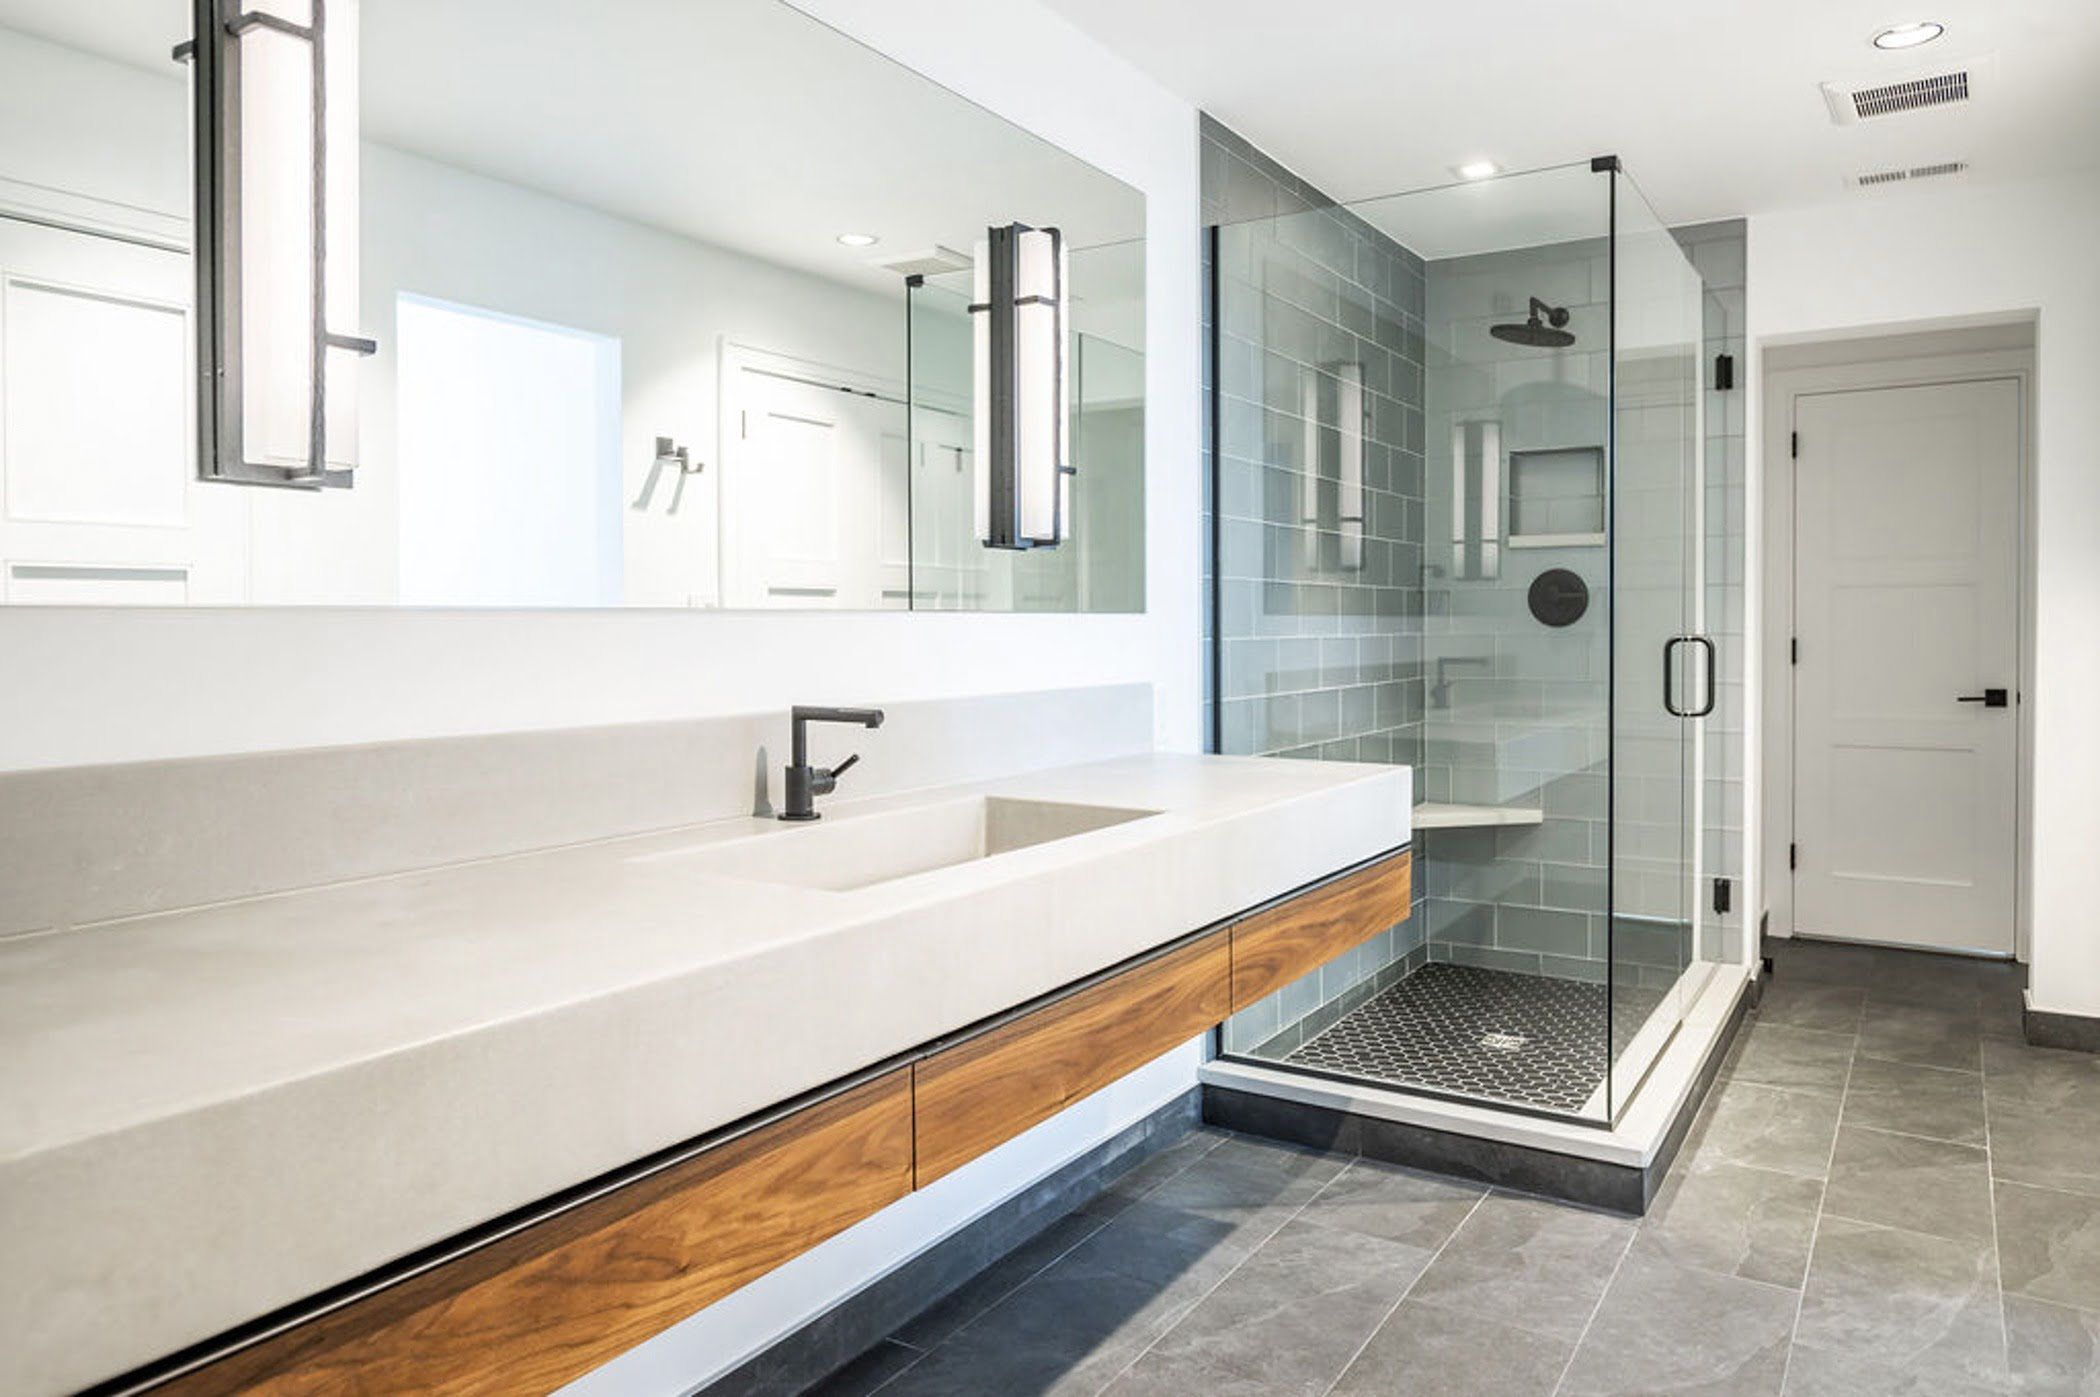 Modern style bathroom with marble countertops with wood trim, and an all glass shower lined with grey tiles